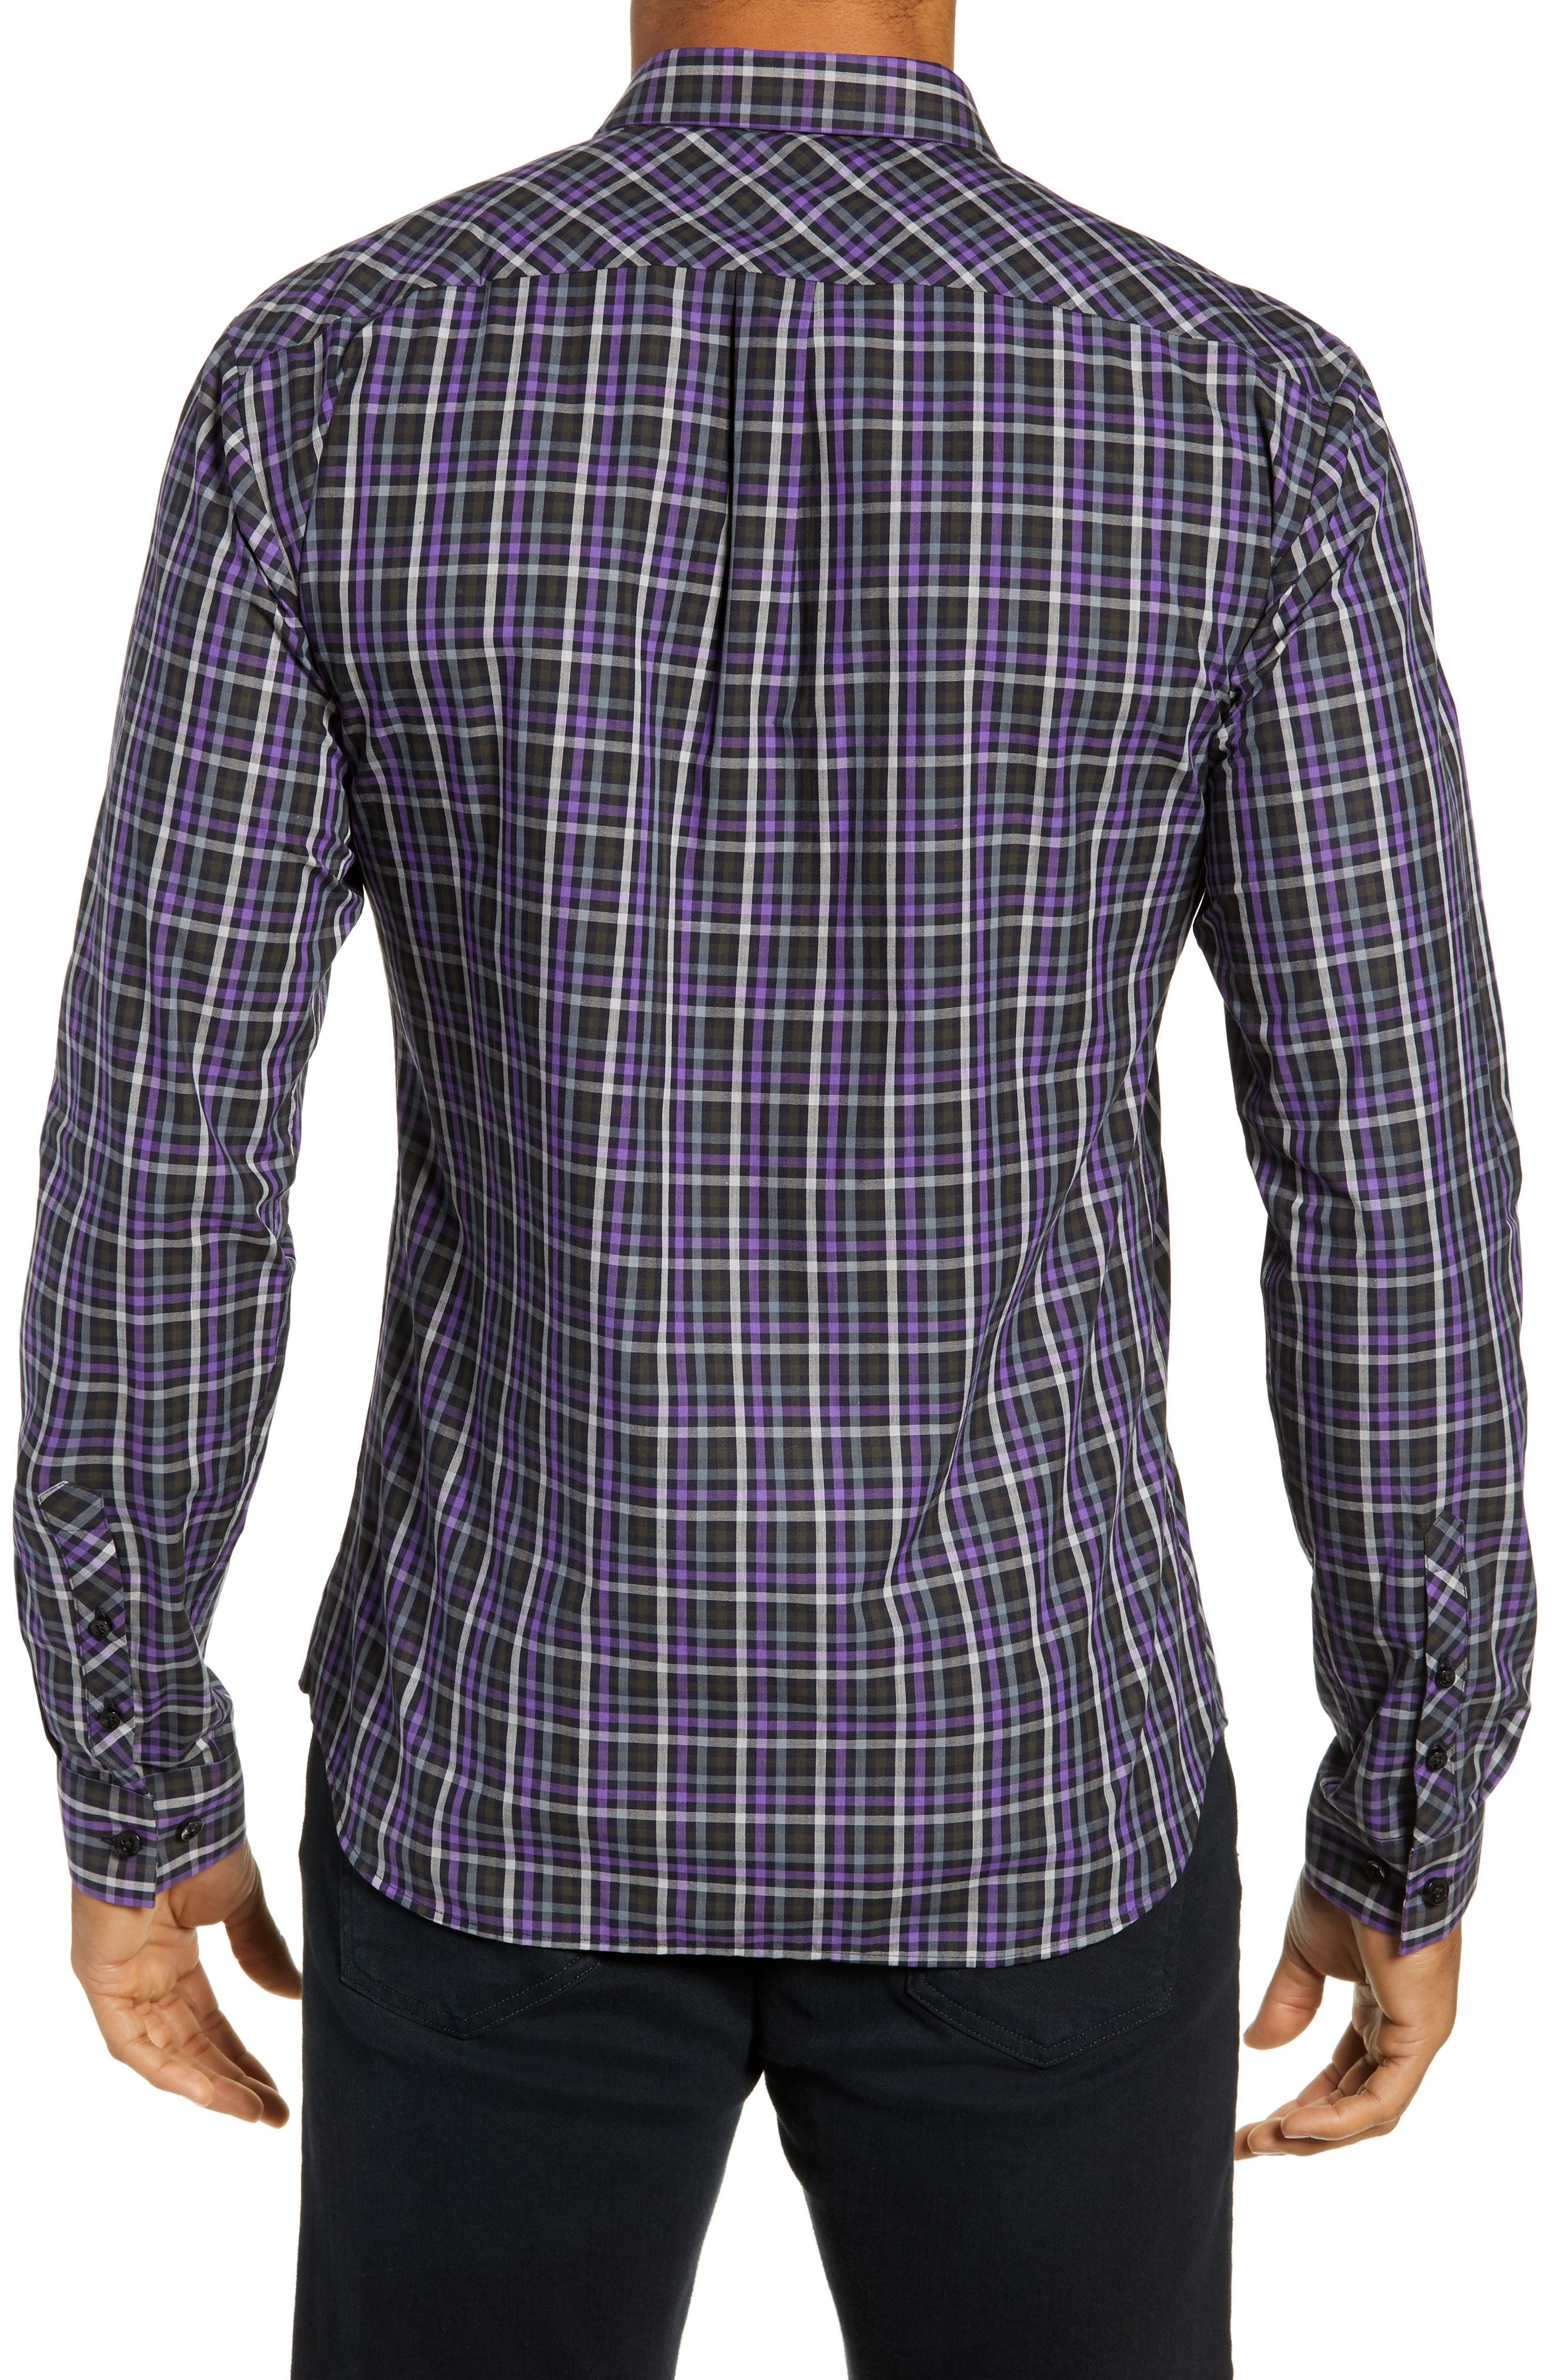 Trim Fit Sport Shirt,                             Alternate thumbnail 3, color,                             PURPLE - BLACK MULTI CHECK